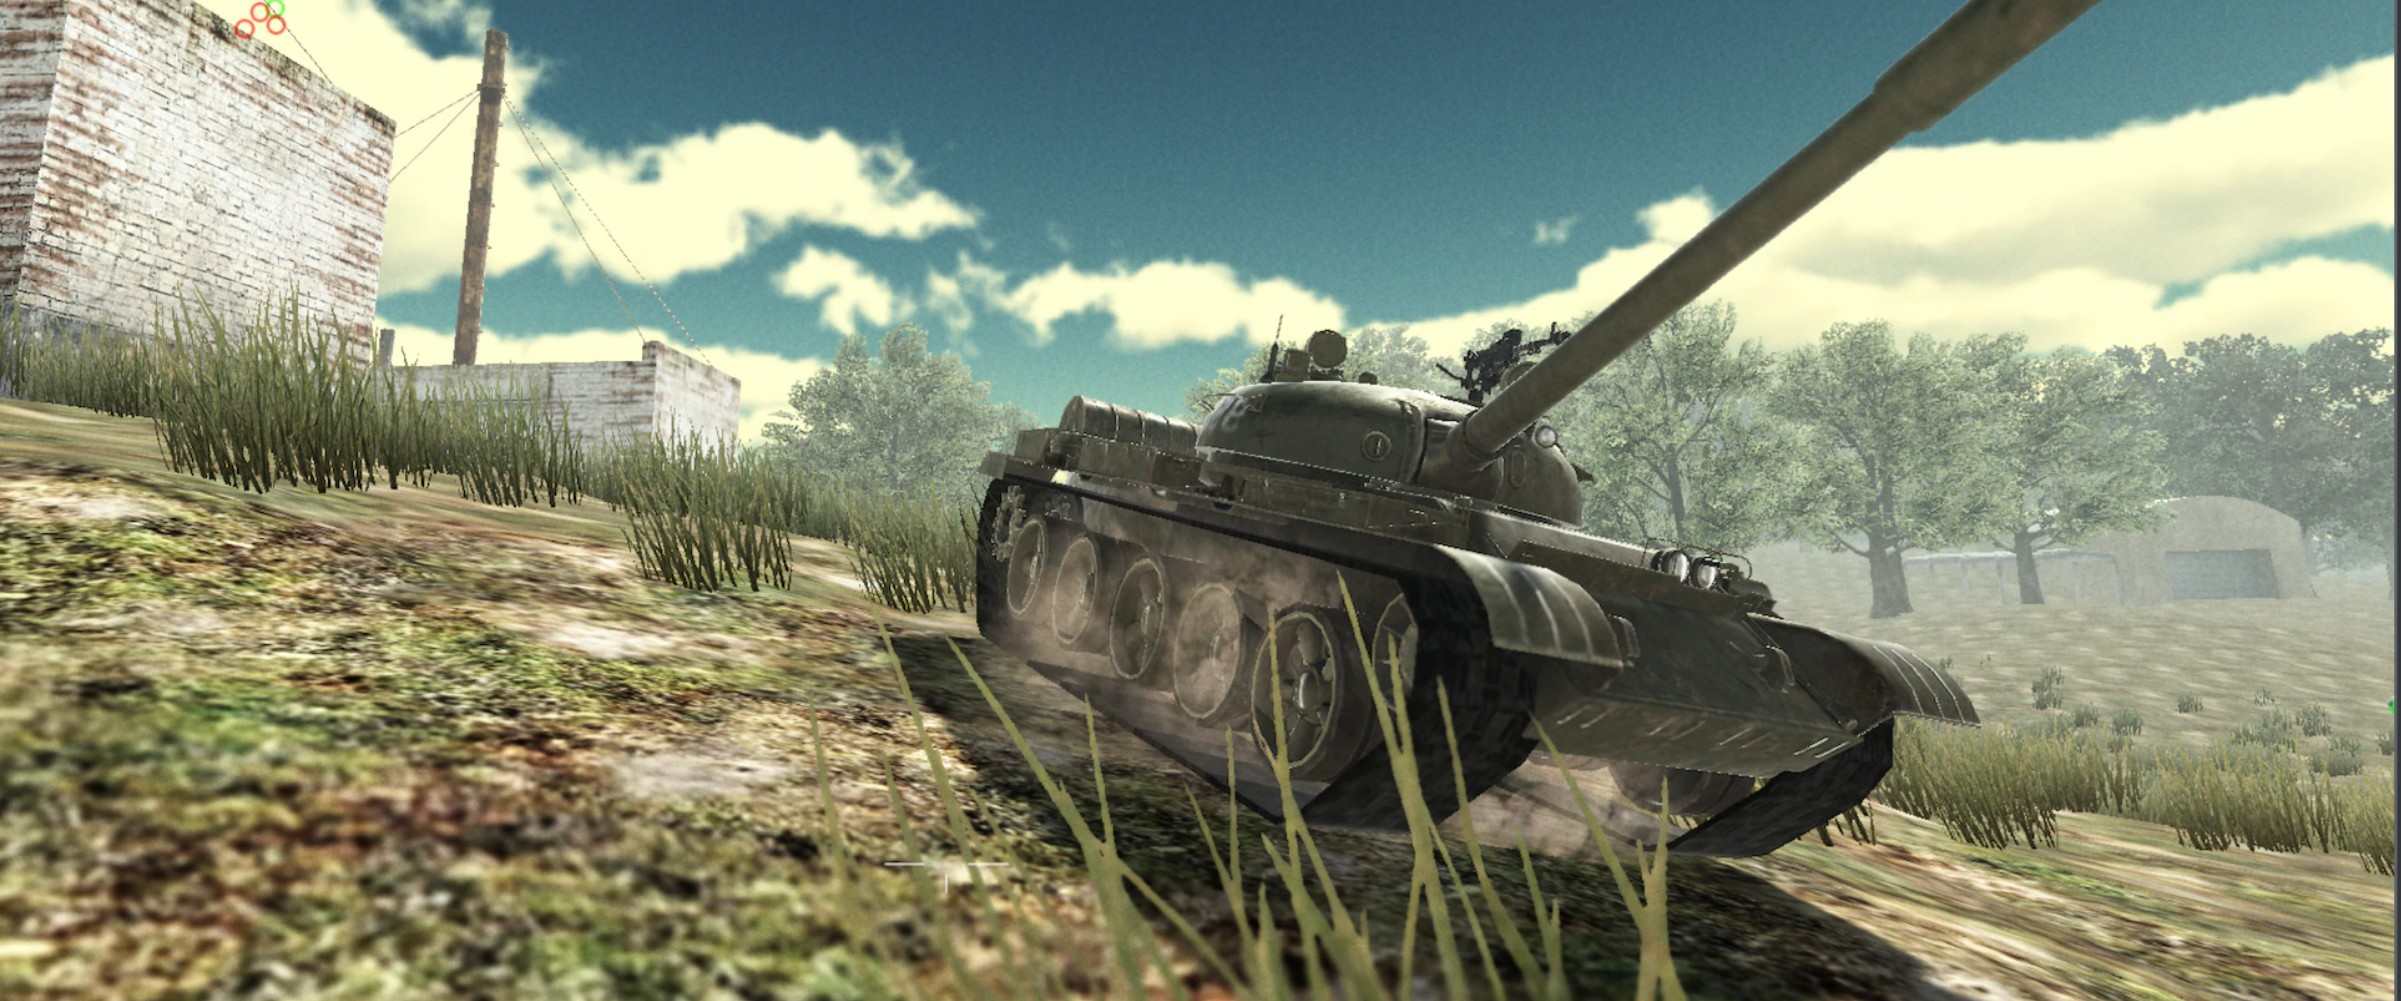 Tanks vs Tanks Review header